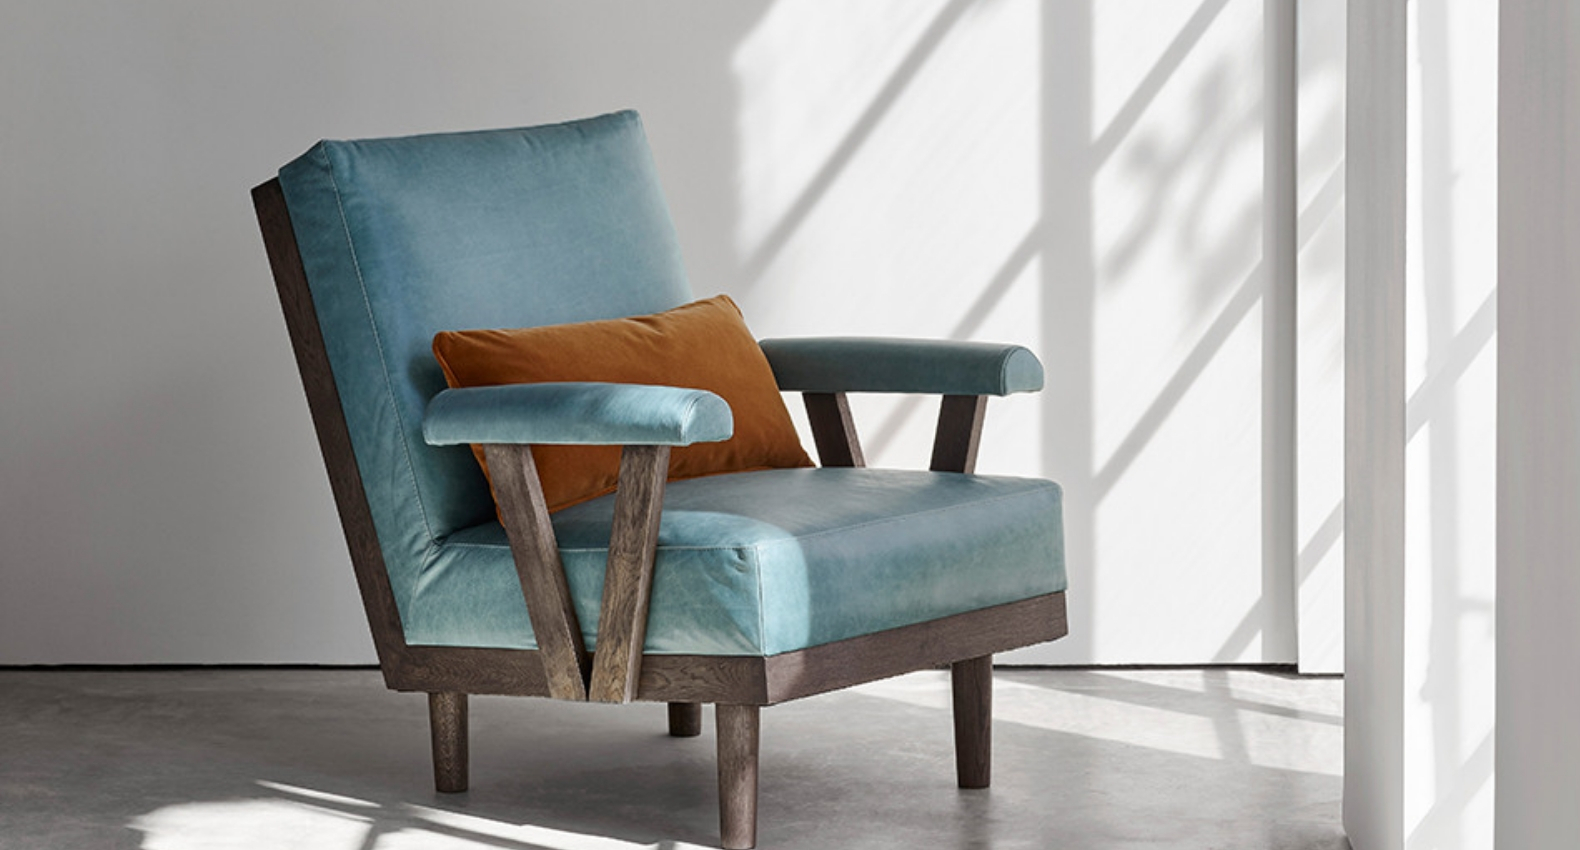 Introducing the Howie Armchair